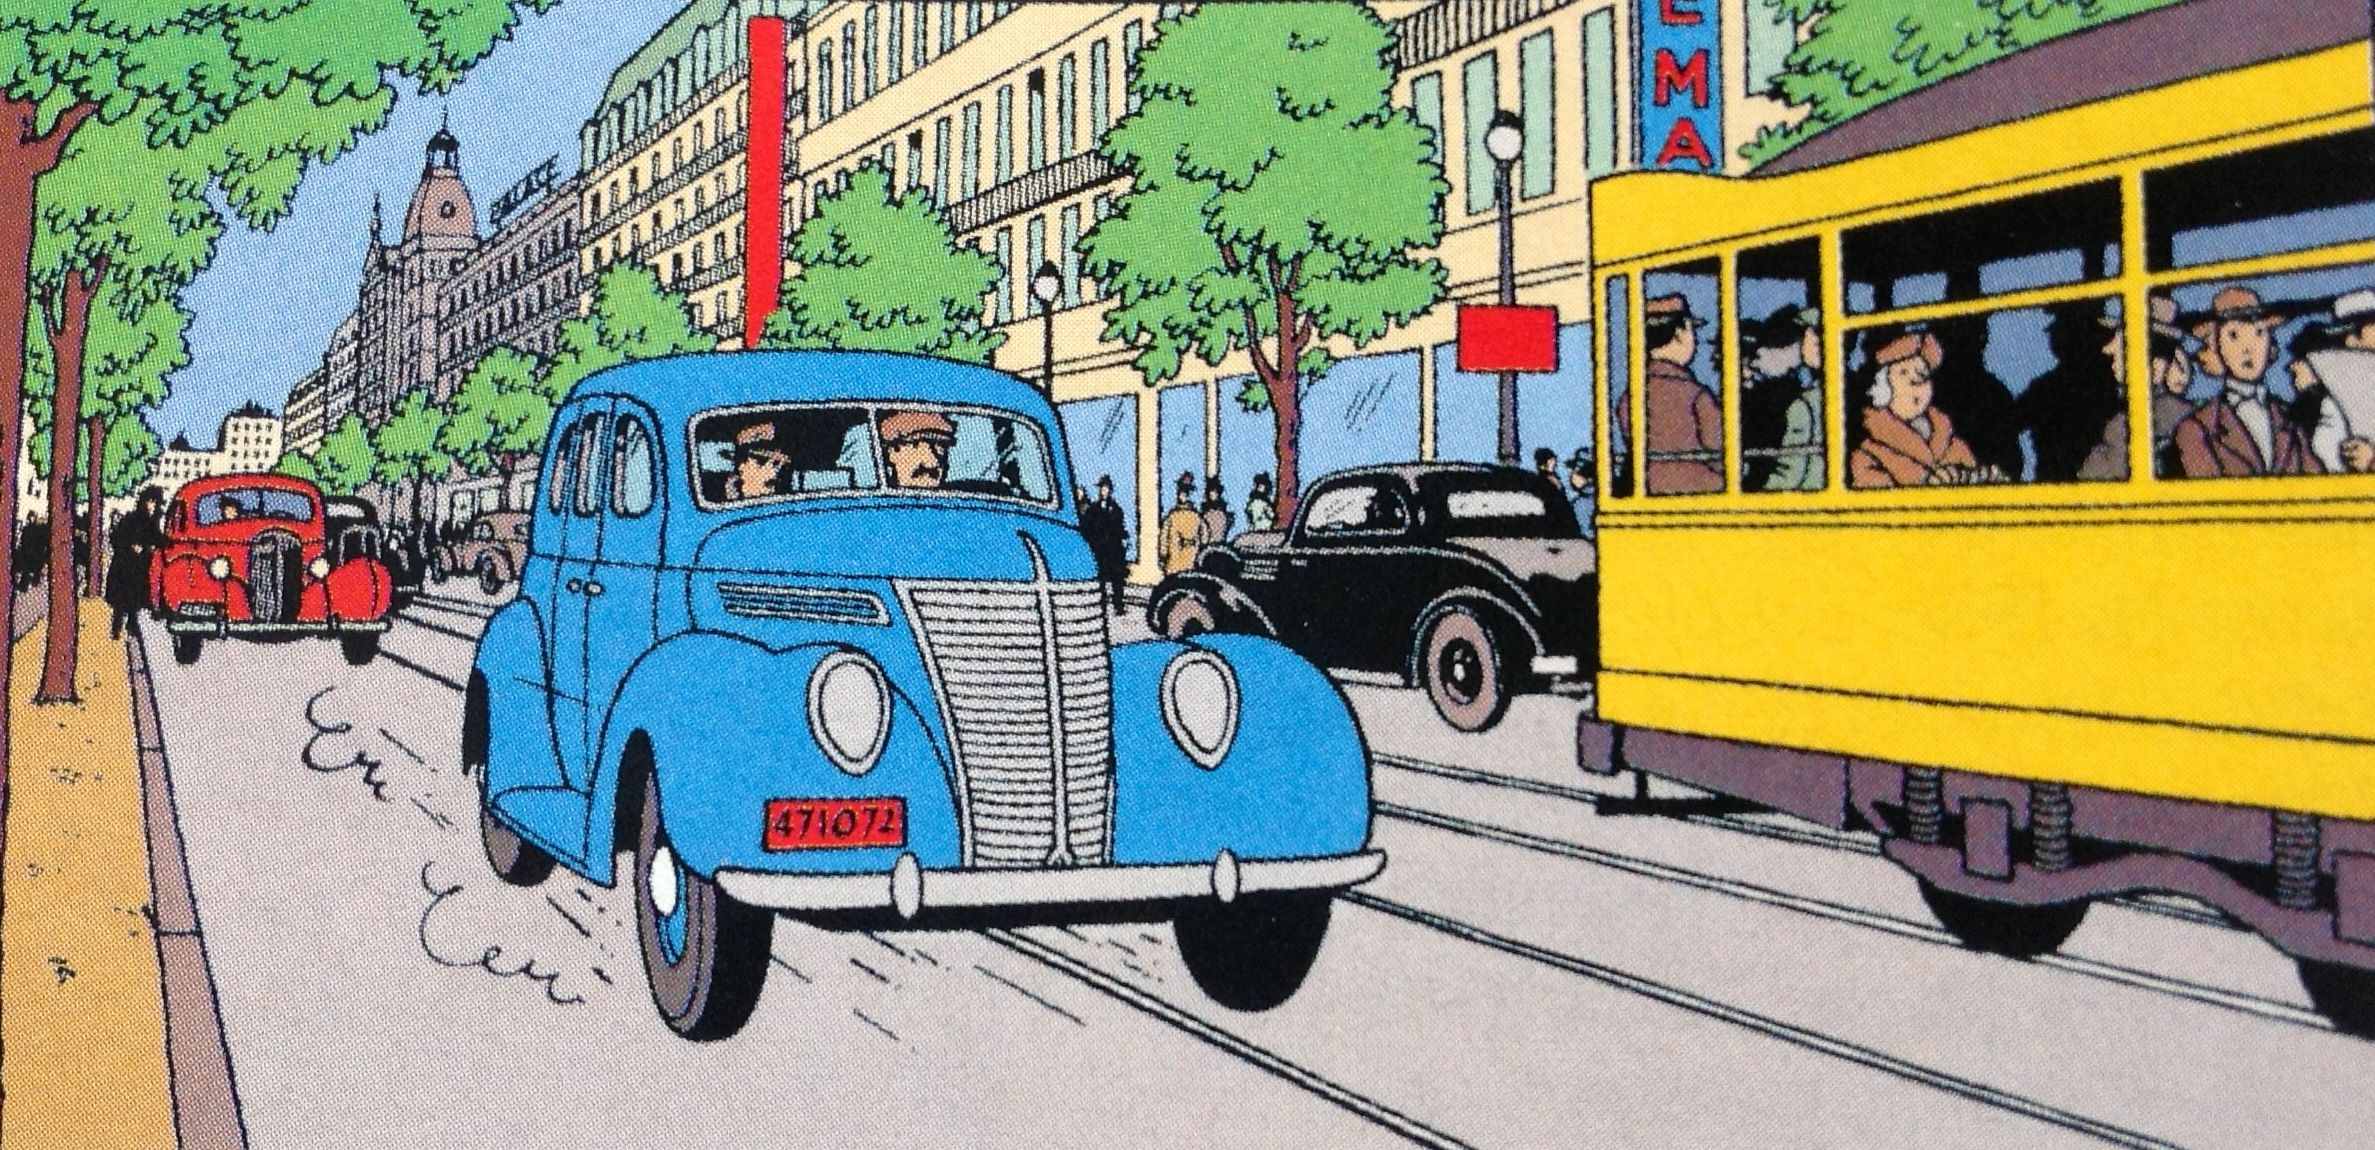 Topmoderne Hergé: The Seven Crystal Balls. This image was used for a famous TK-12